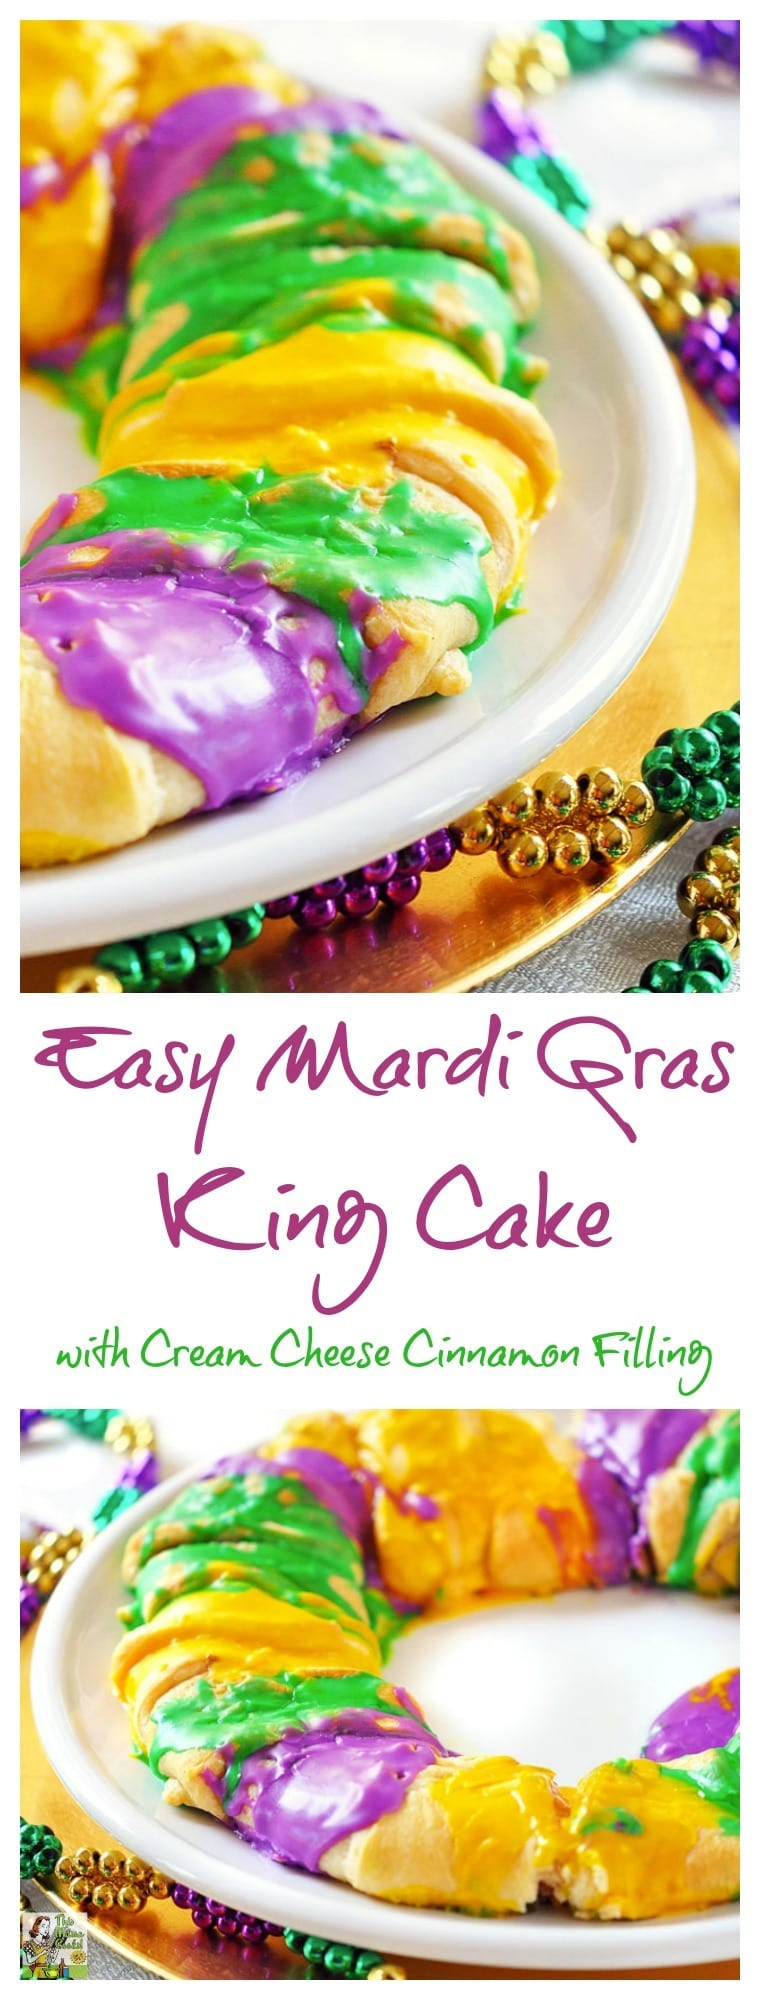 Need A King Cake Recipe For Your Mardi Gras Party Make This Healthier And Easy